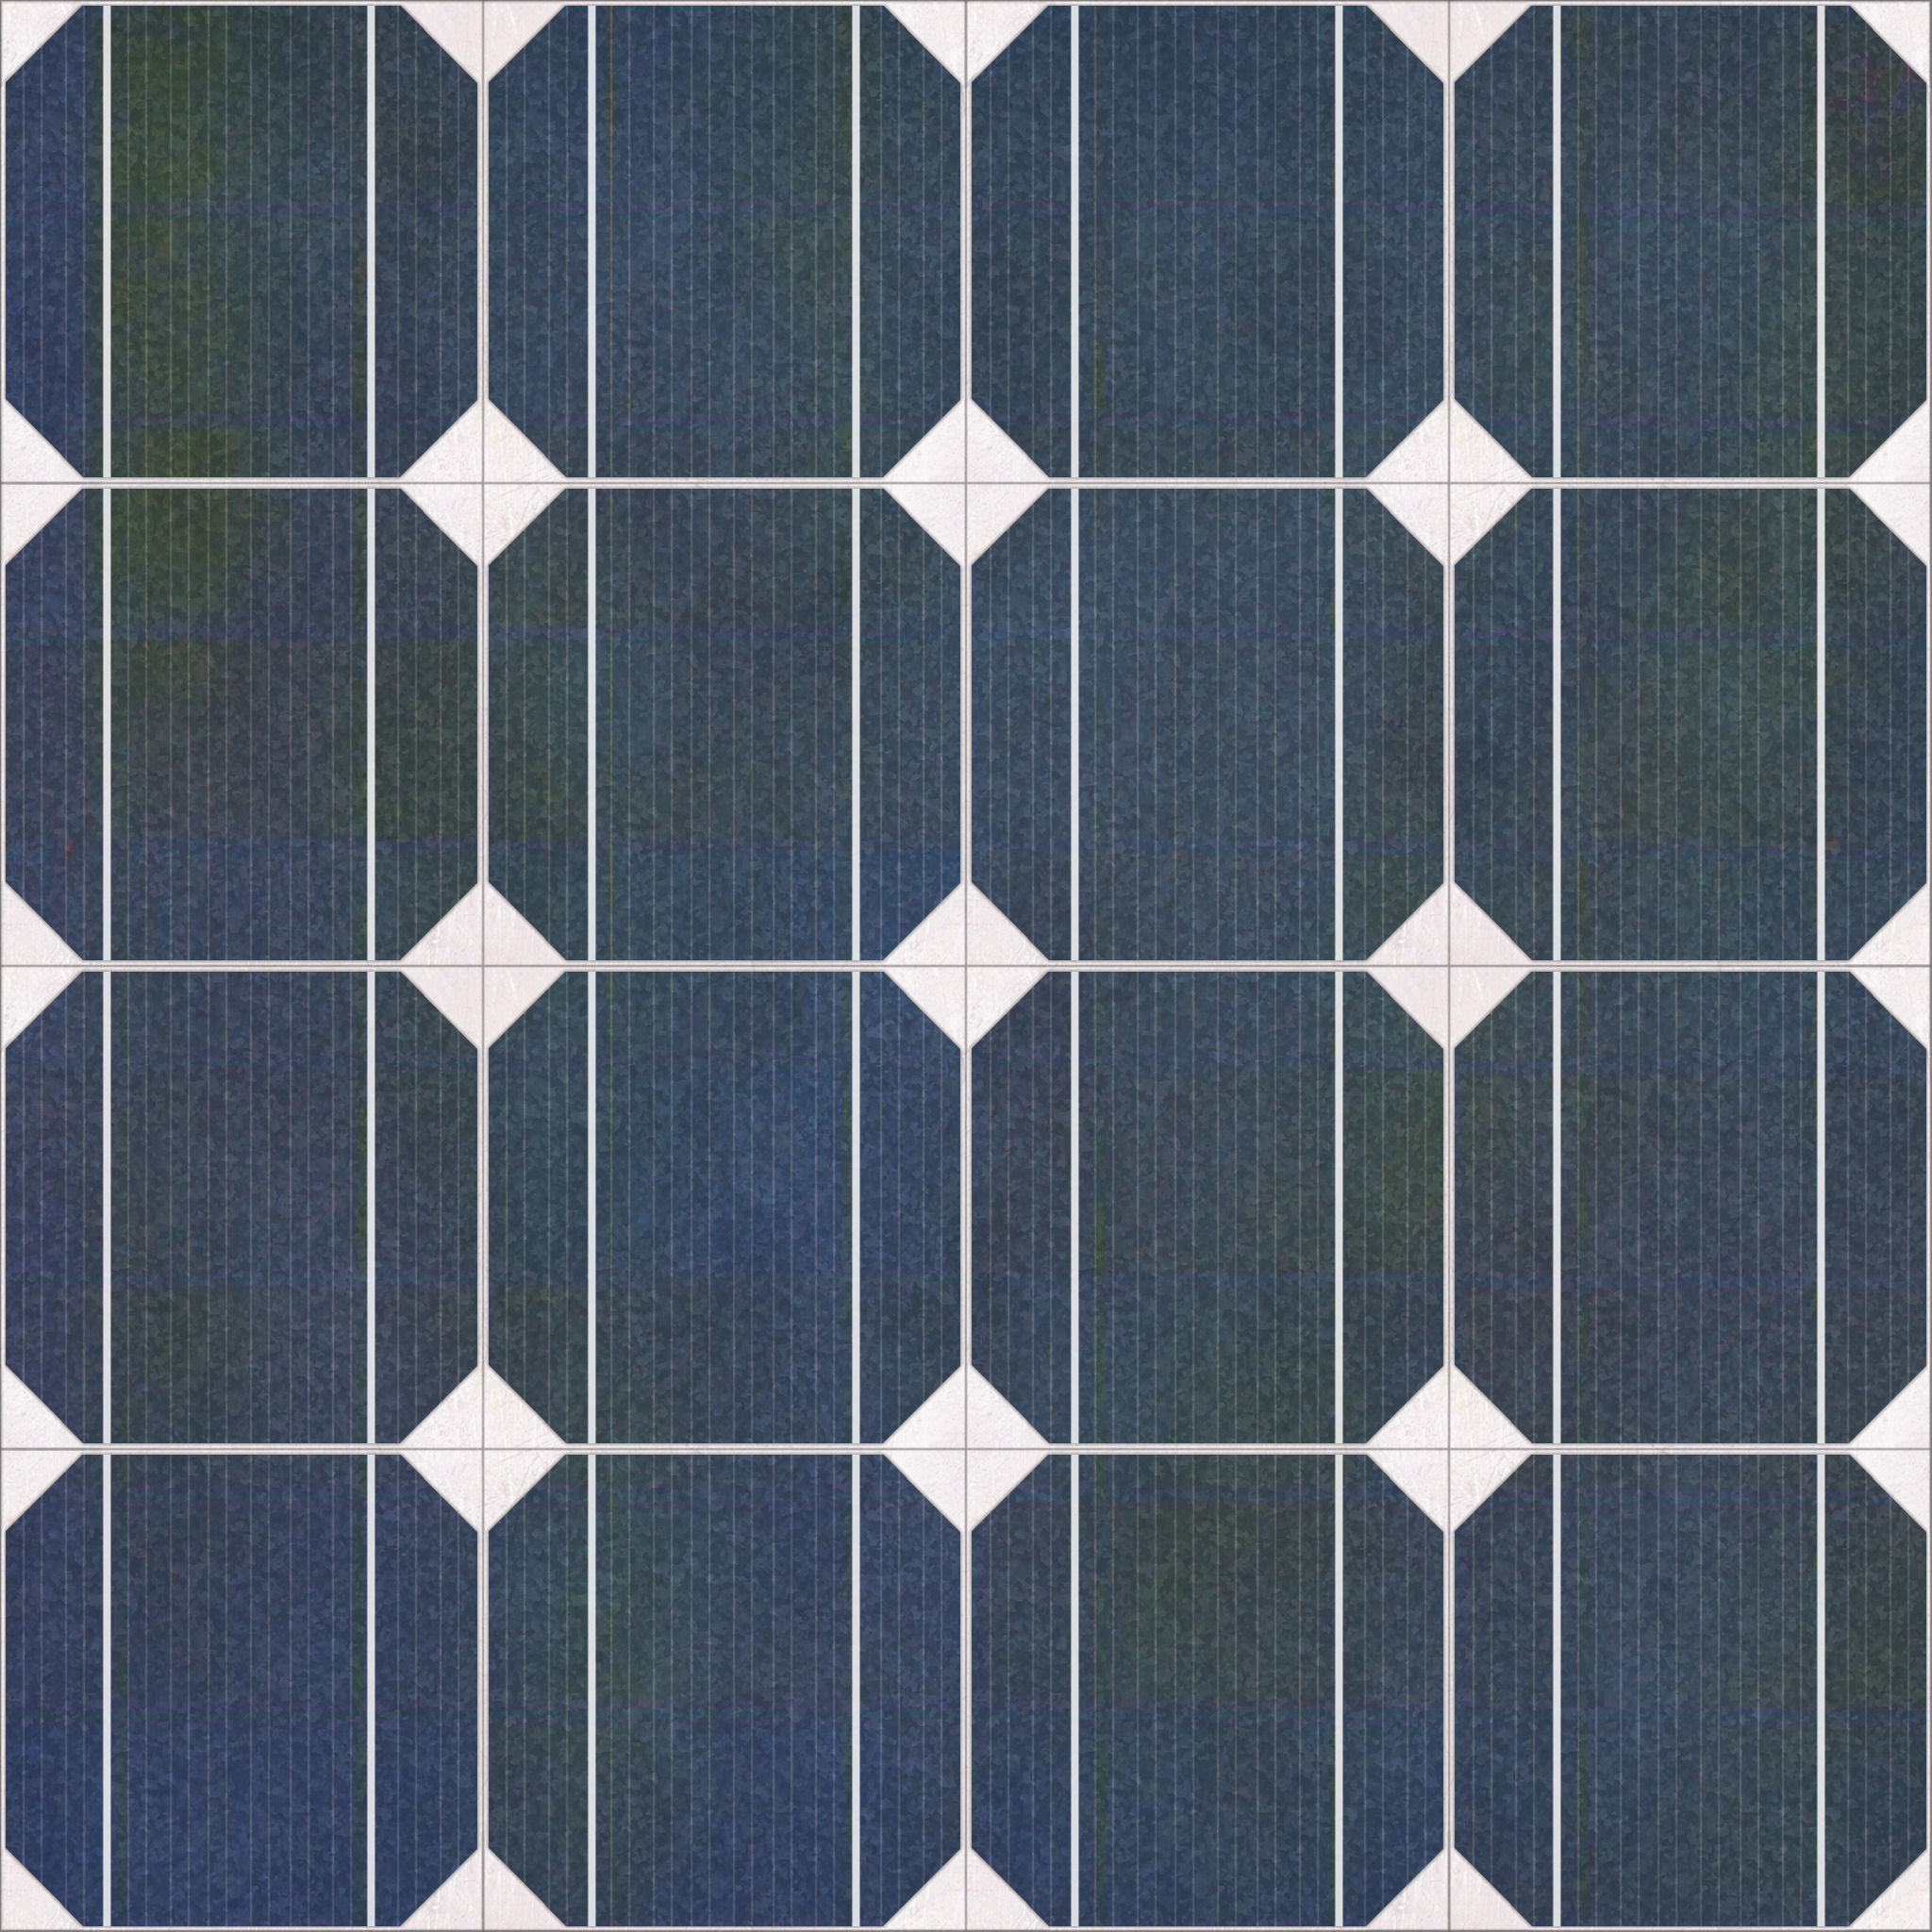 solar panels collection 3D Models - CGTrader.com